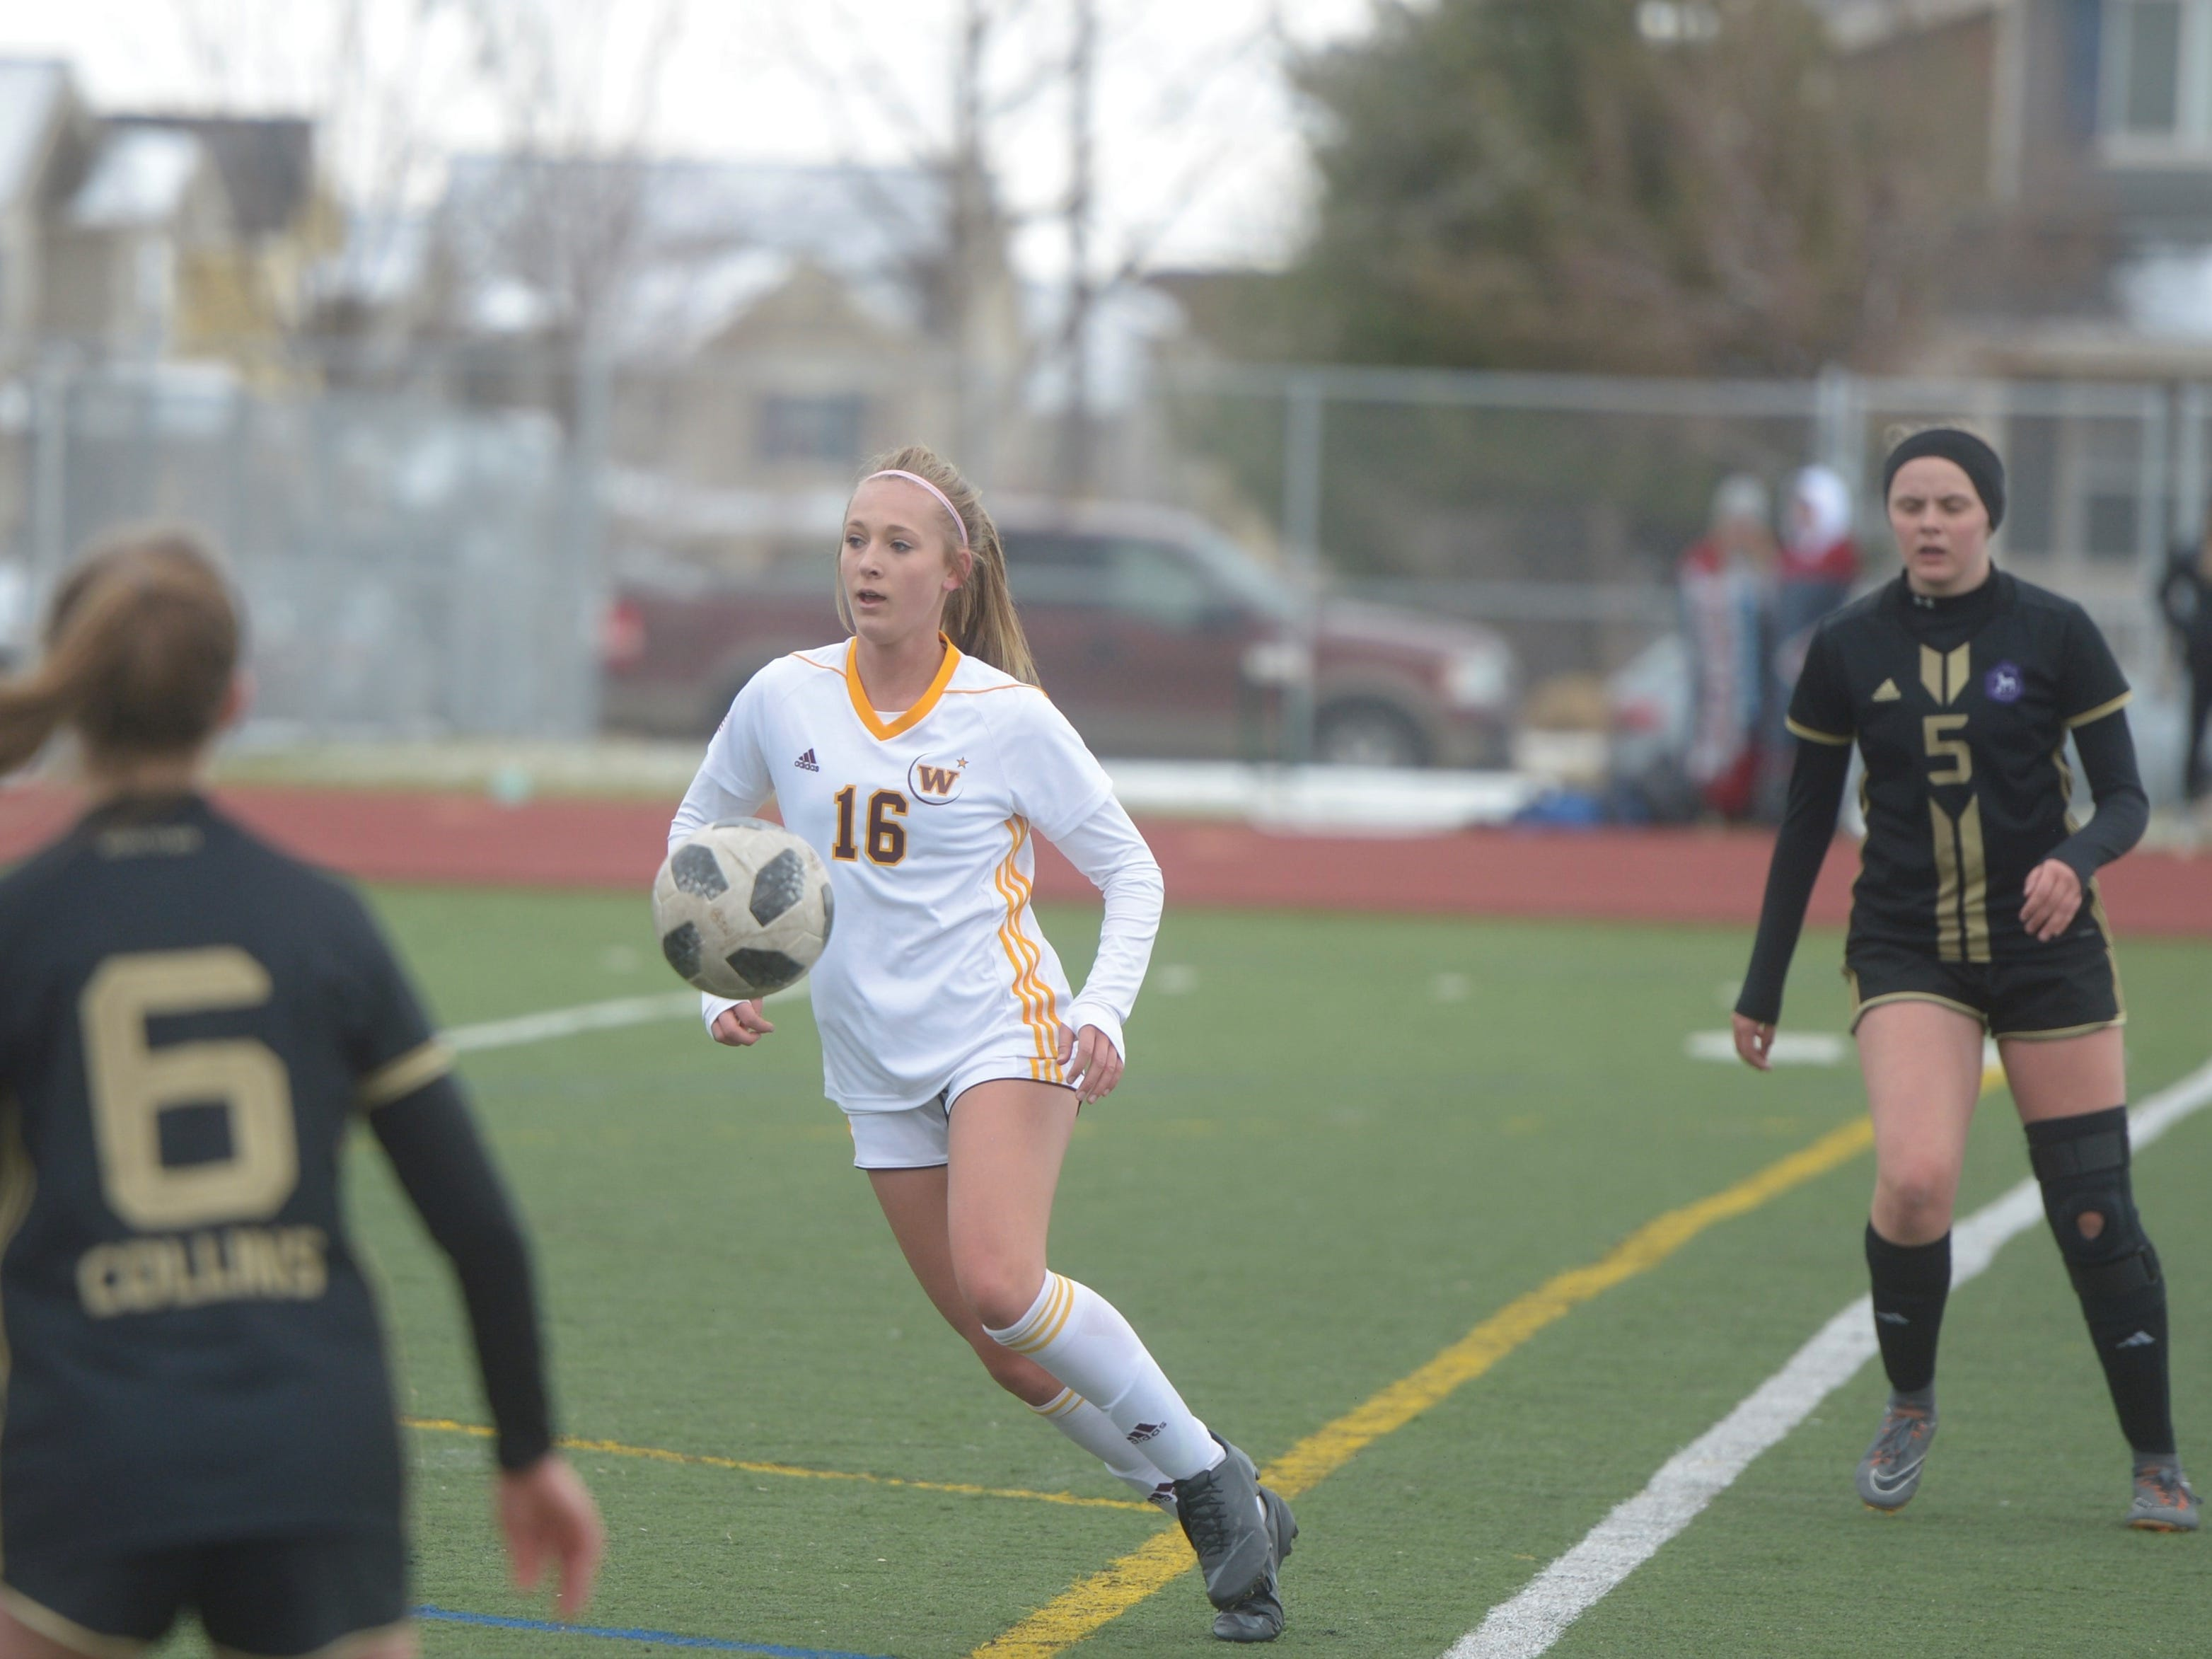 Windsor soccer player Abby Bush chases a ball during a game Saturday, April 13, 2019 at Fossil Ridge. Windsor won 3-0.